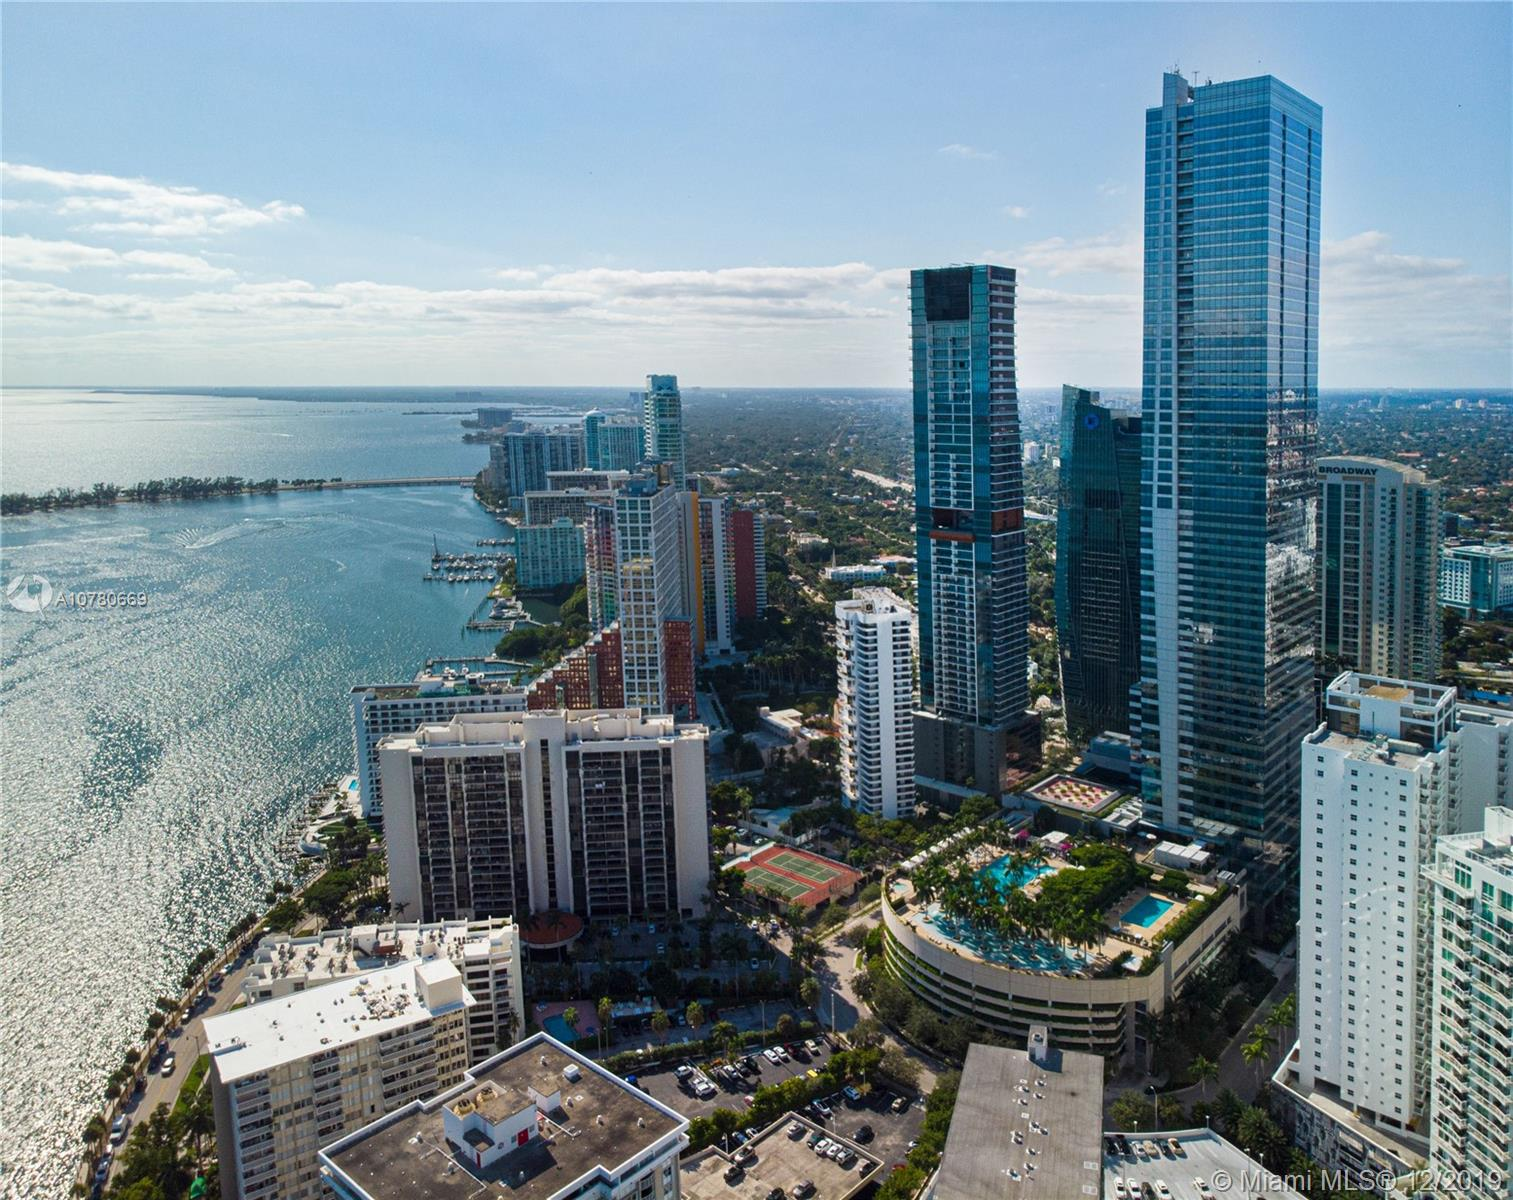 1425 Brickell Ave, 52D - Miami, Florida